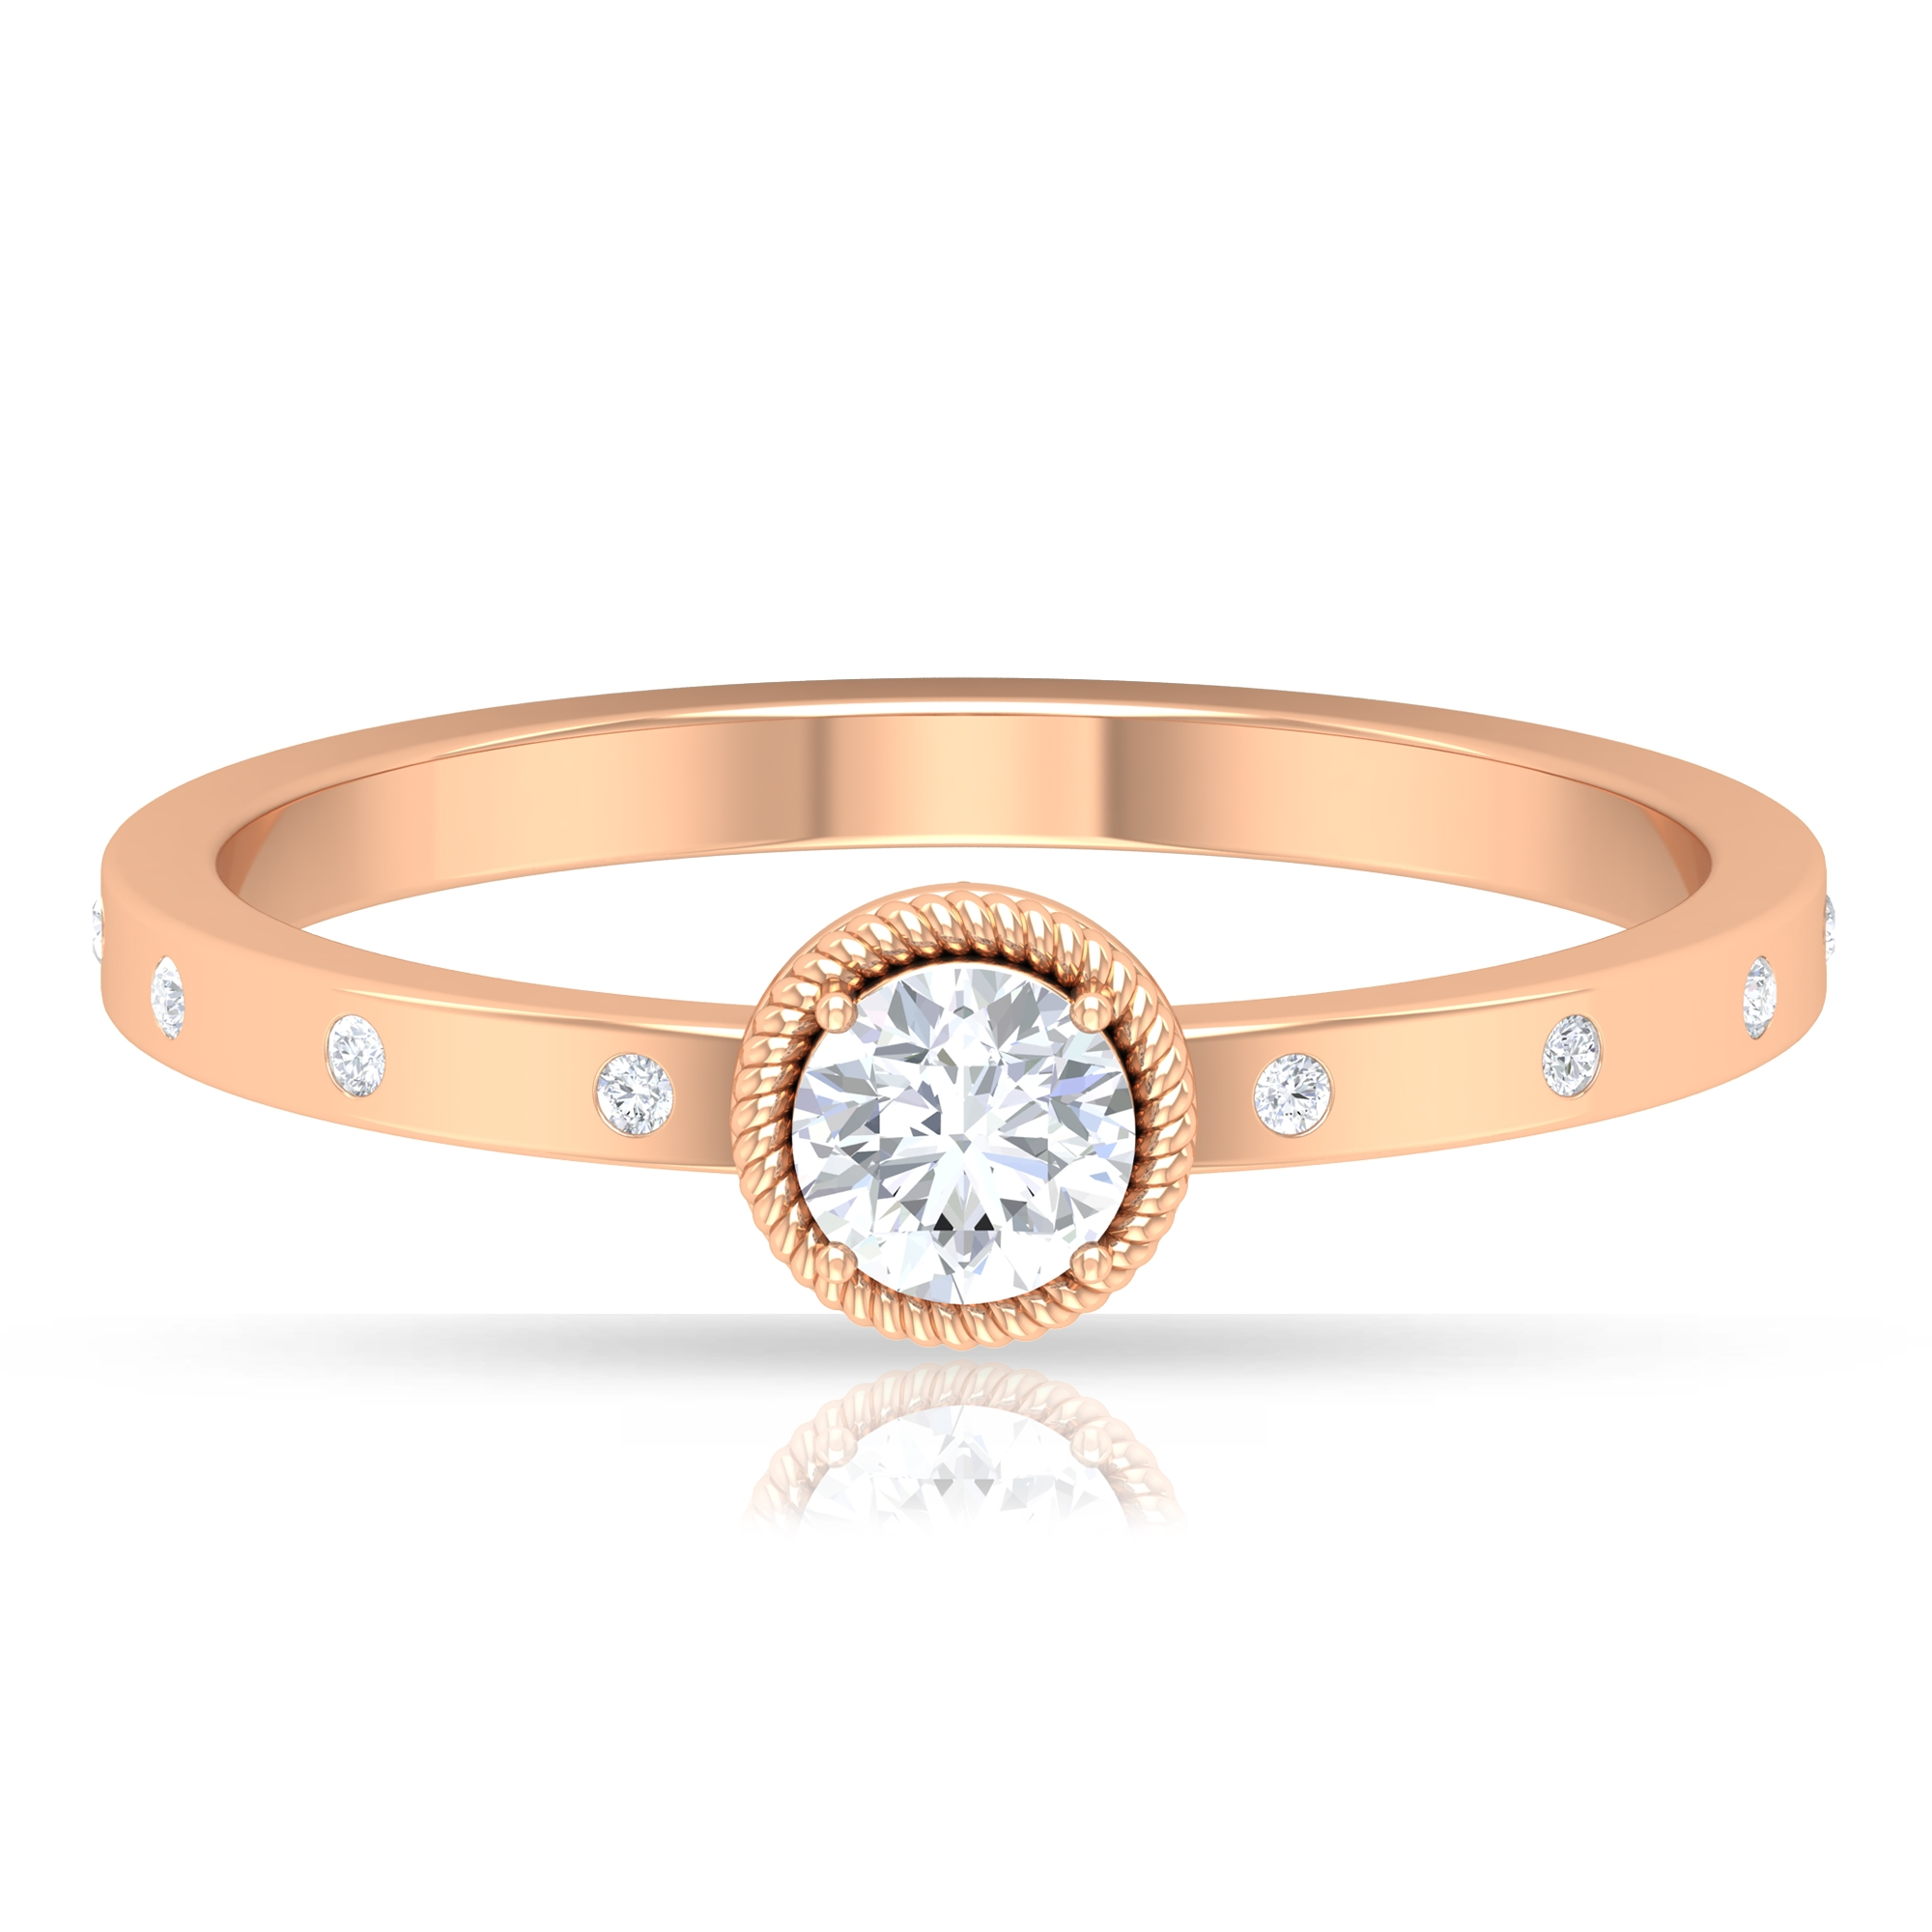 4 MM Round Cut Solitaire Diamond Ring in Rope Frame with Sleek Accent